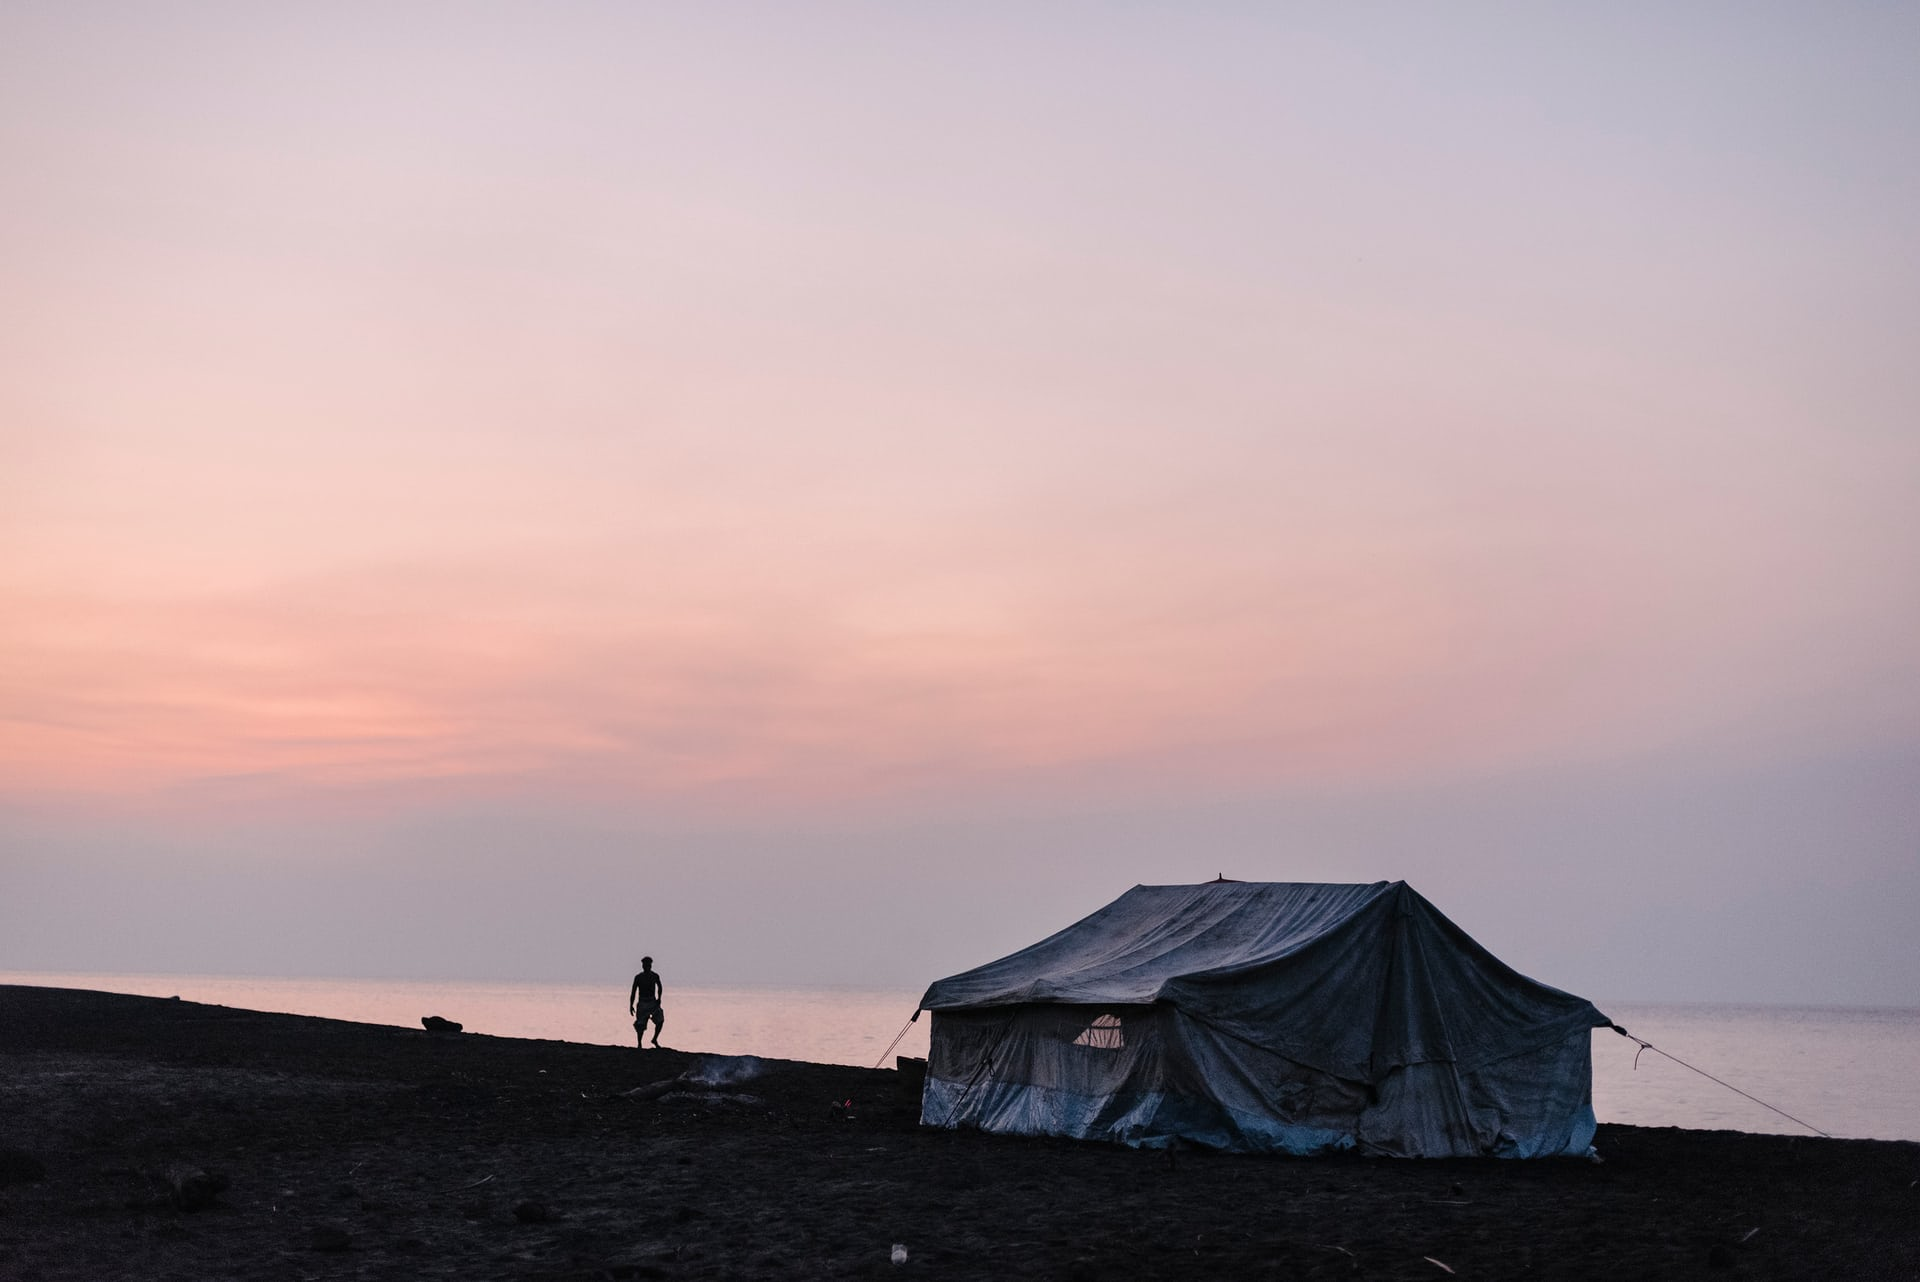 A man watches the sun set over Ambae Island. Communities from villages in the mountain were provided with tents for temporary housing when they evacuated to safer ground along the coastline in April due to volcanic activity. Photograph: Alana Holmberg for the Guardian